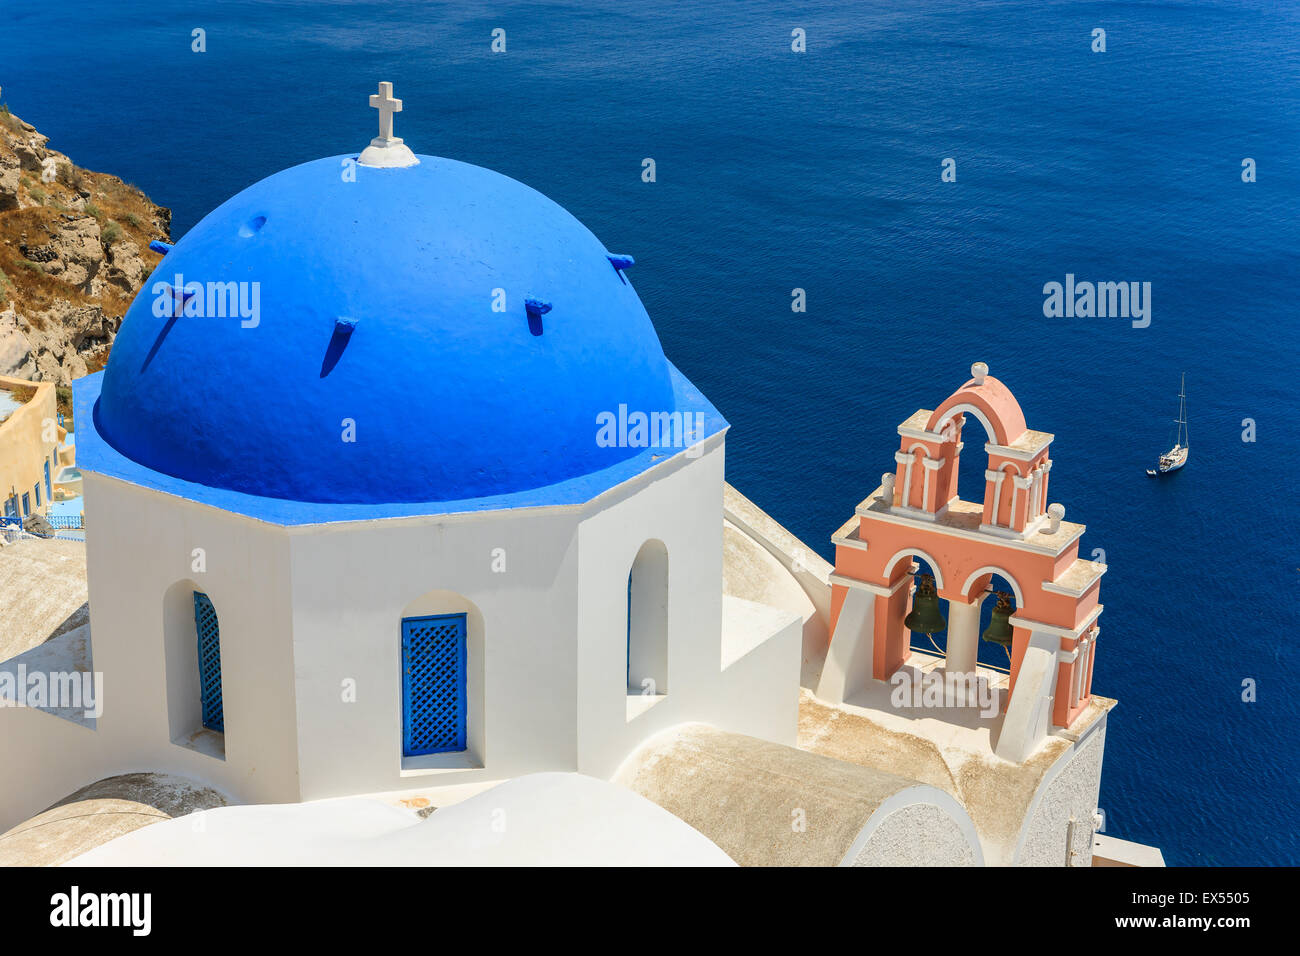 Traditional Greek Cyclades architecture style in Oia, a small town at the northern tip on Santorini, Greece - Stock Image